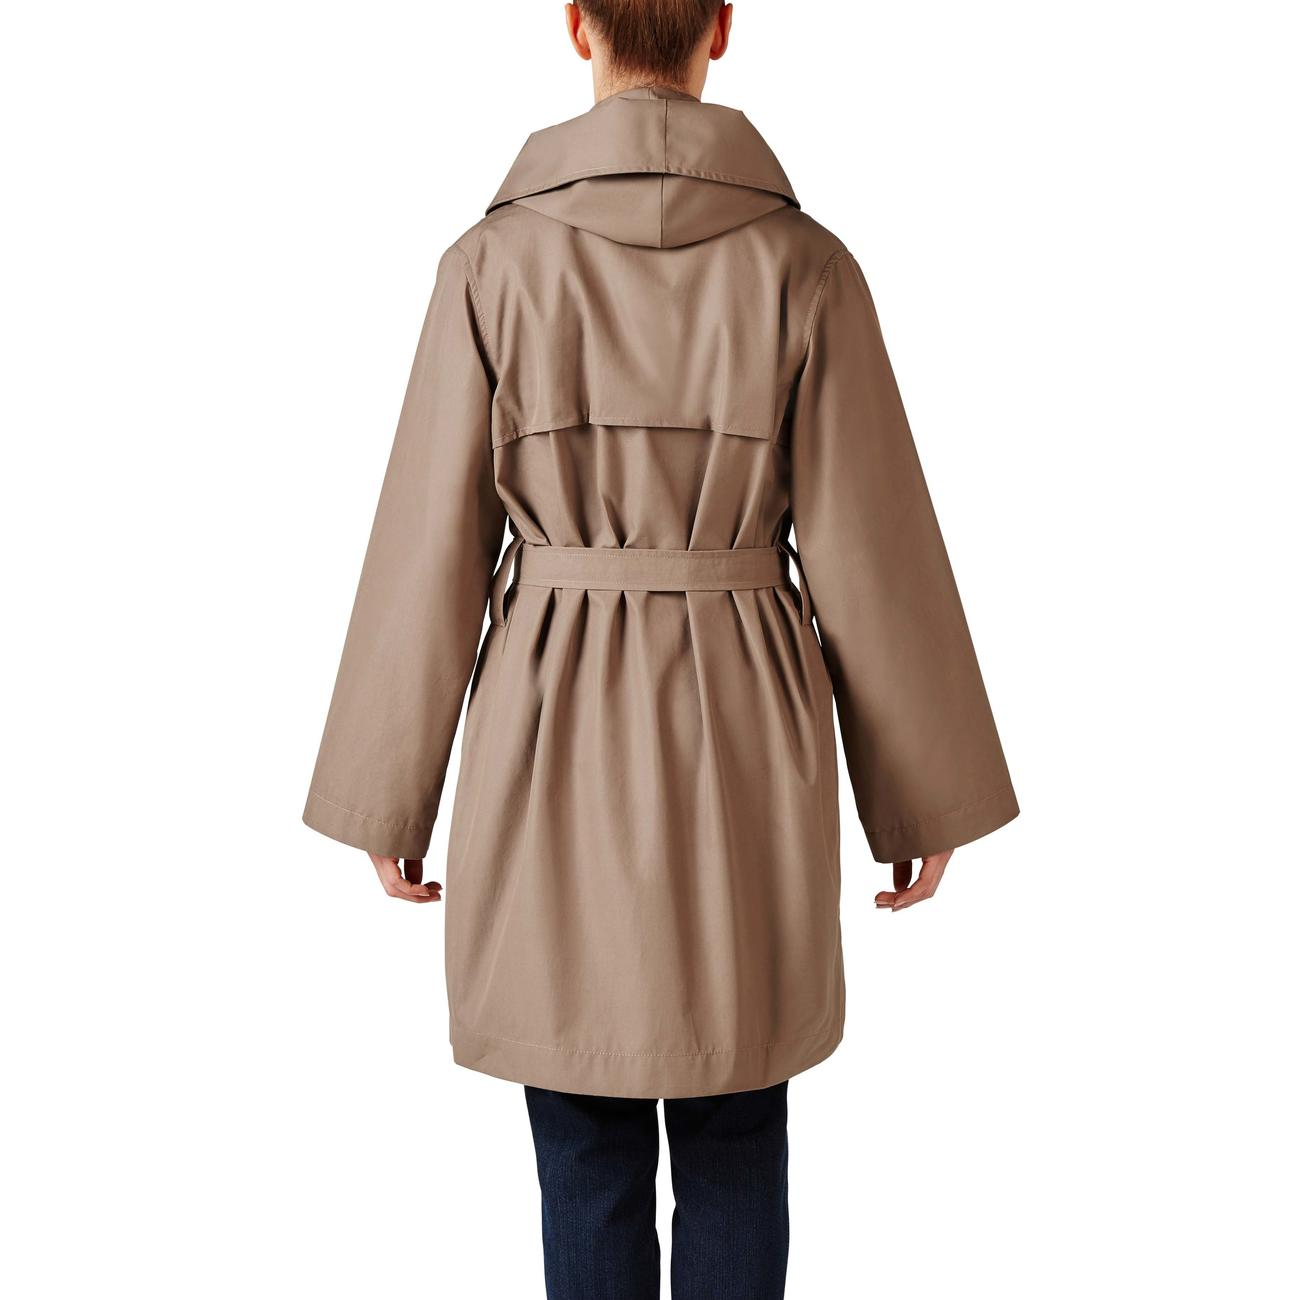 The outdoor coat with couture character.